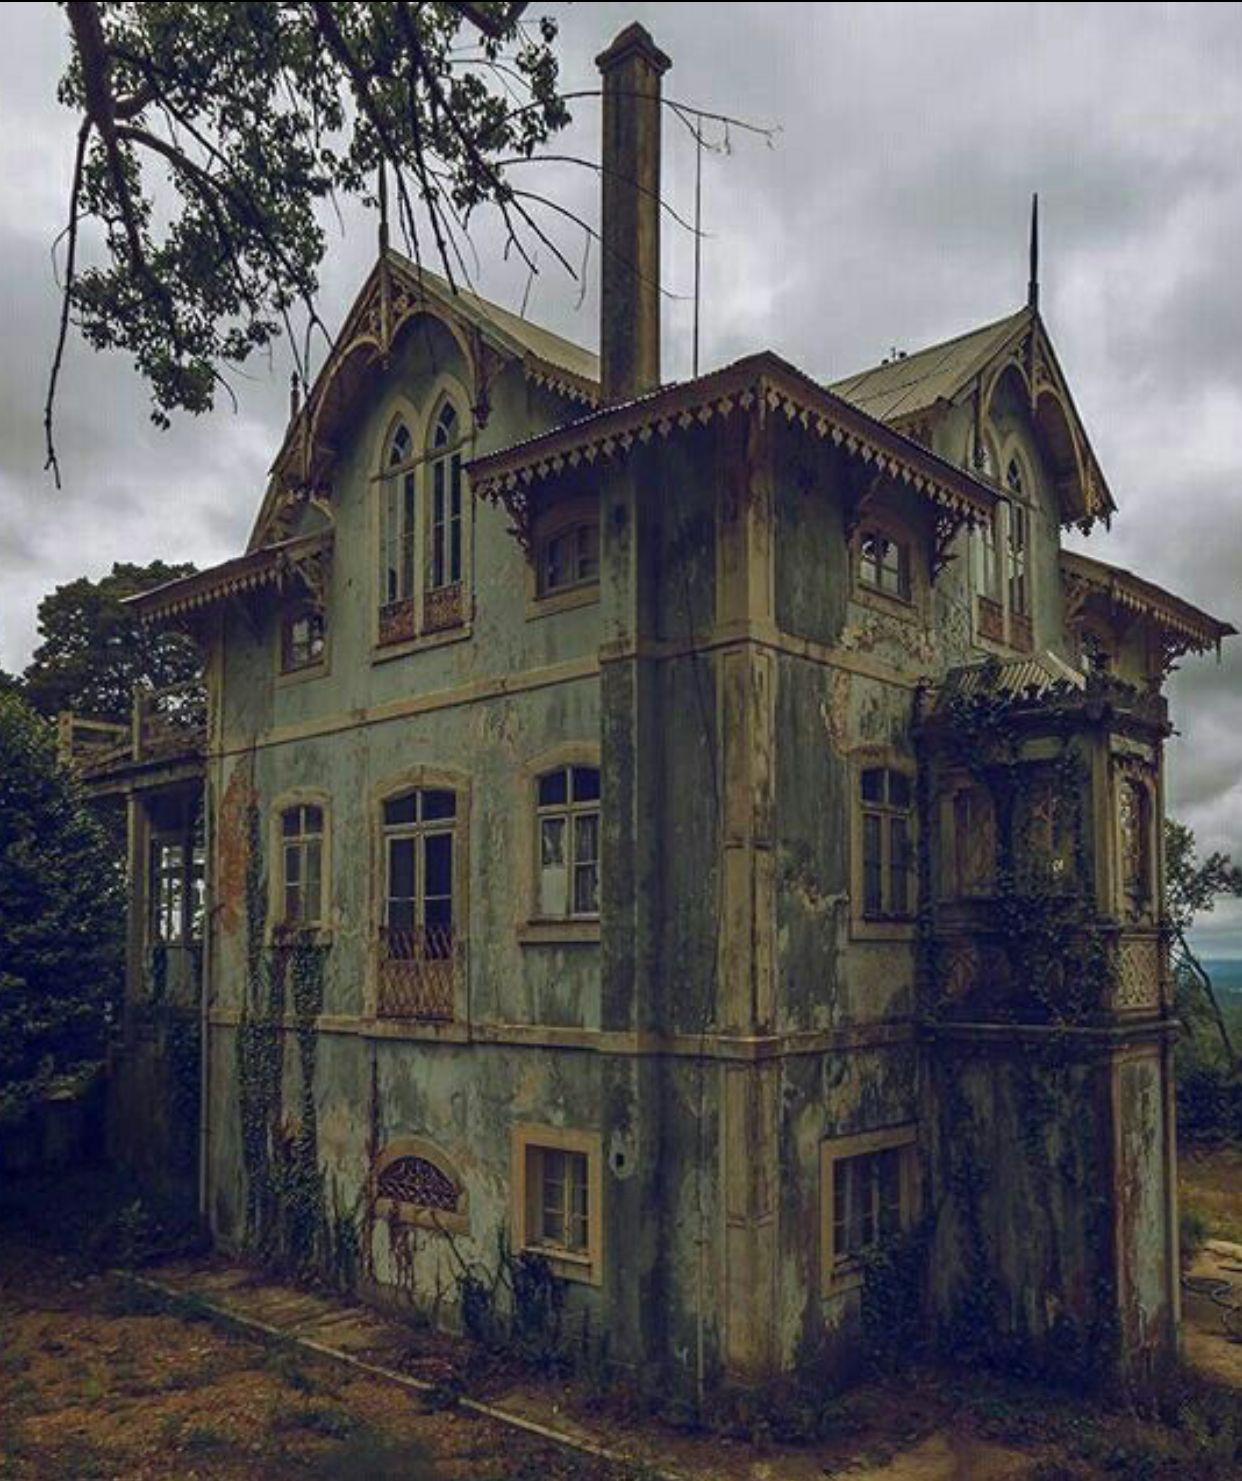 Abandoned; a tale of forgotten lives 43